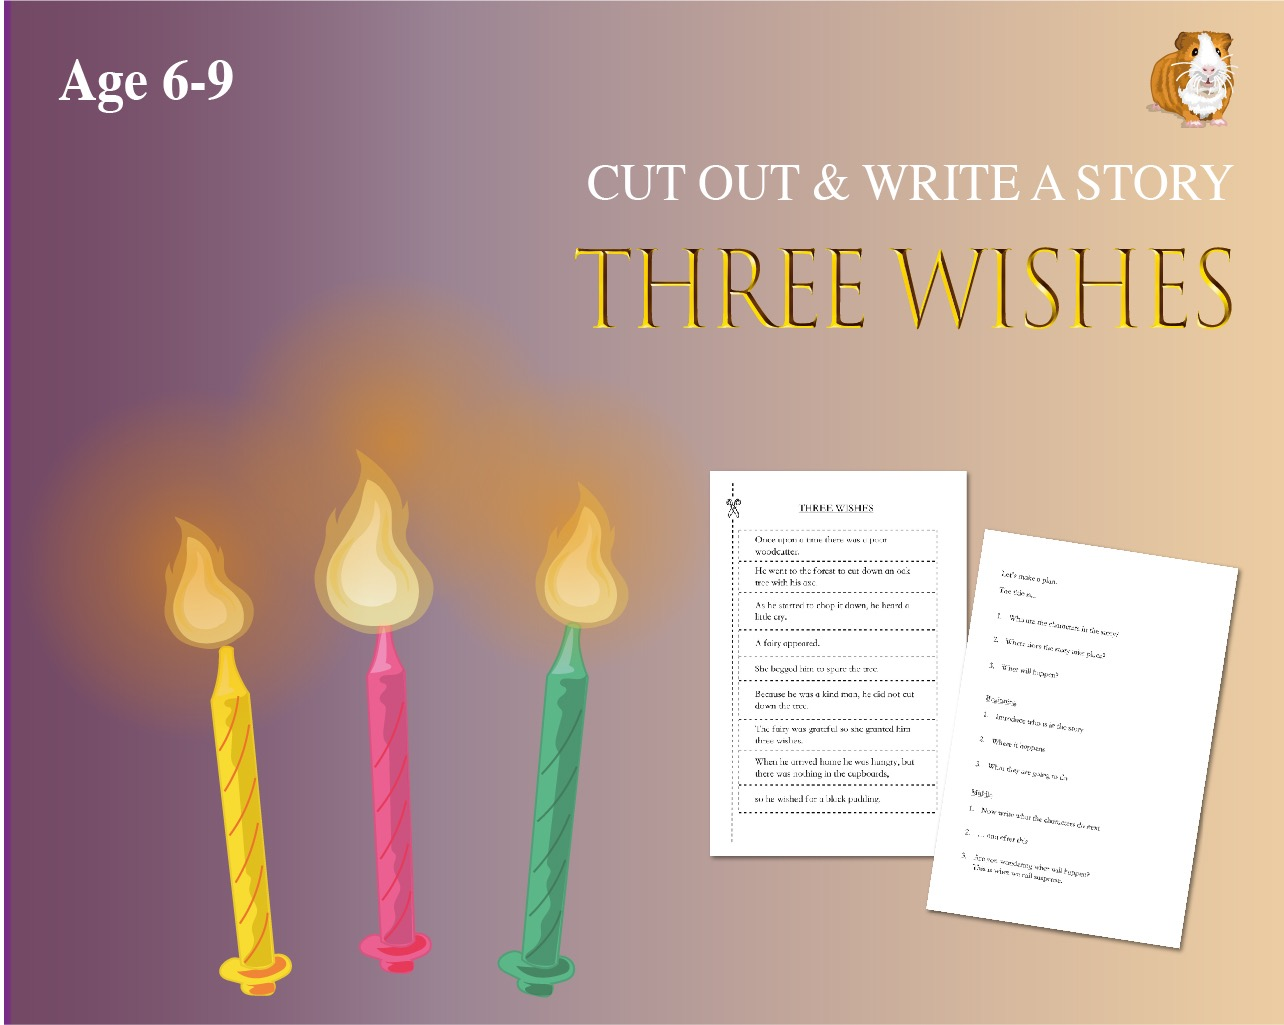 Cut Out And Write The Story Of 'The Three Wishes' (6-9 years)